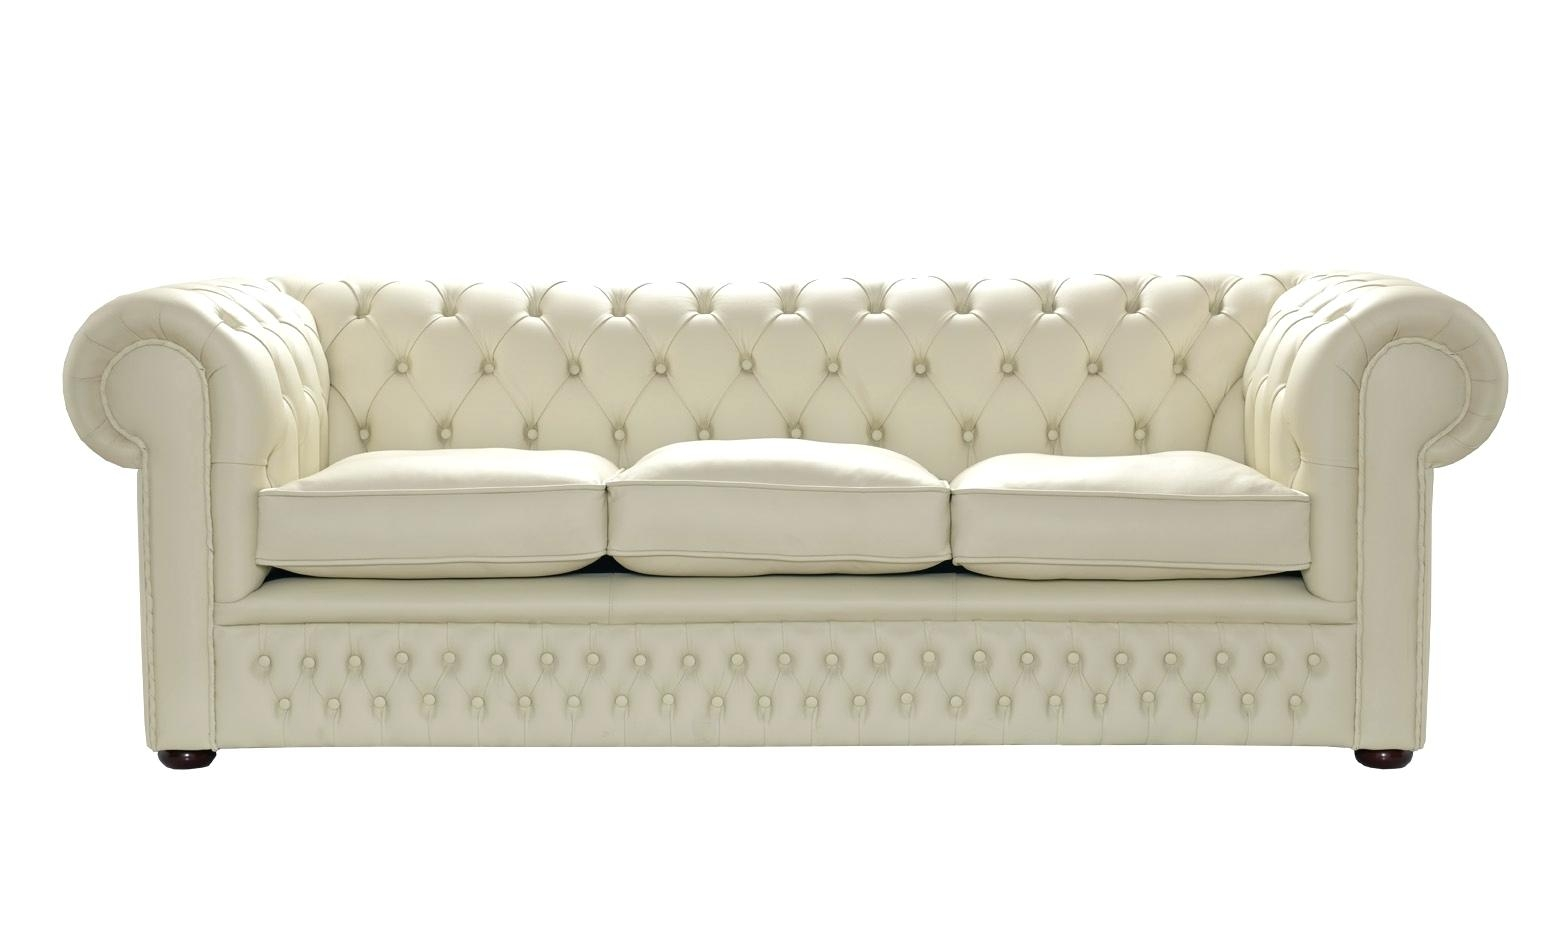 Bonded Leather Sofa Set Excellent Cream Couch Ivory Decorating Within Cream Colored Sofas (View 12 of 15)